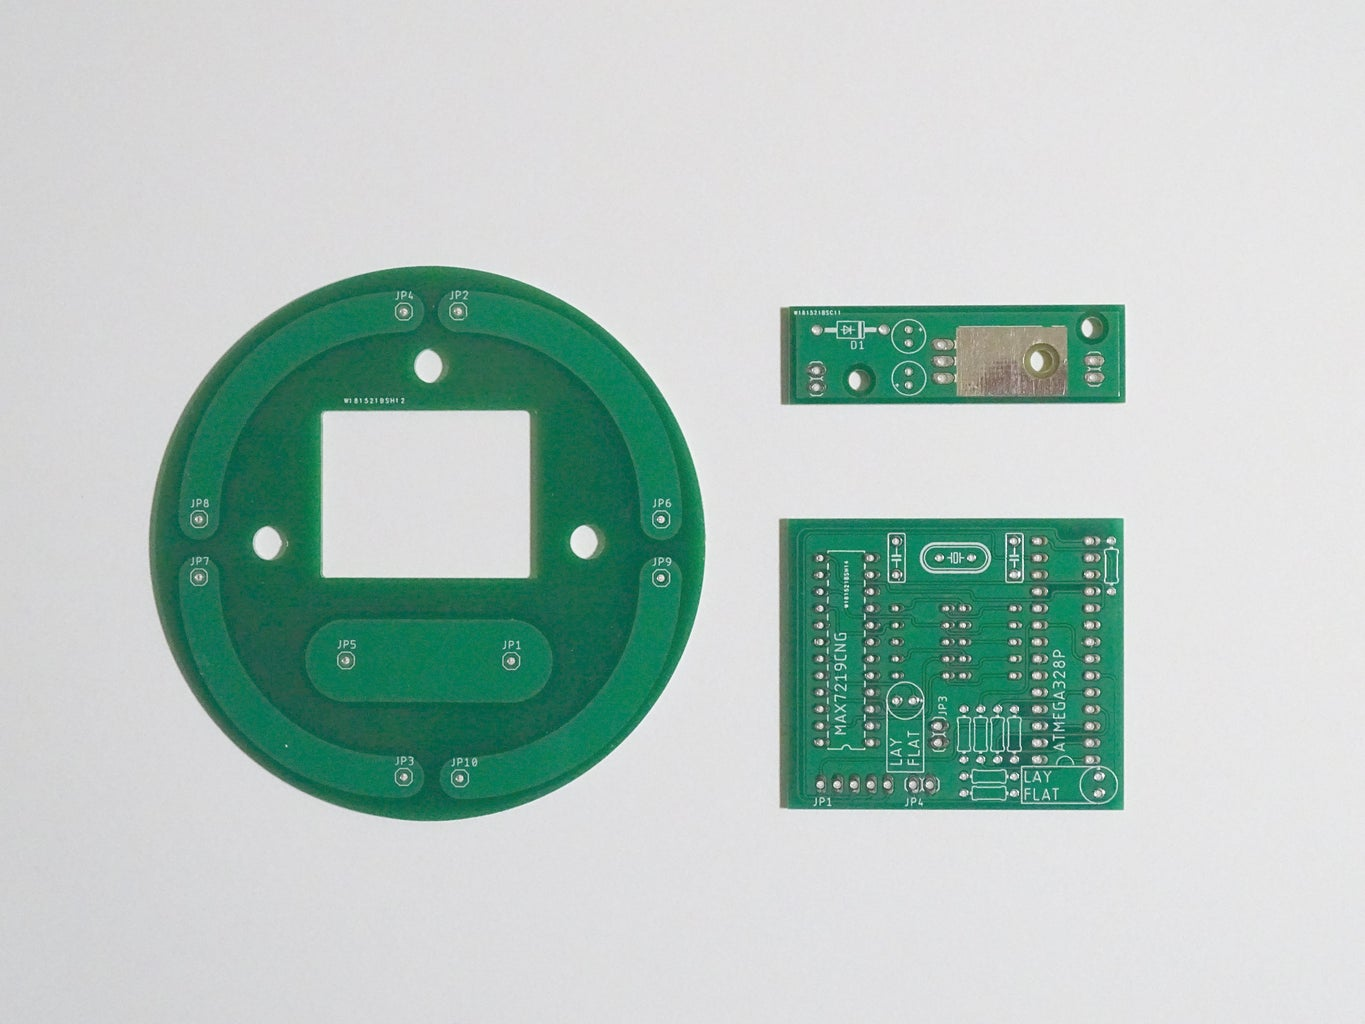 The PCBs and Electronic Components